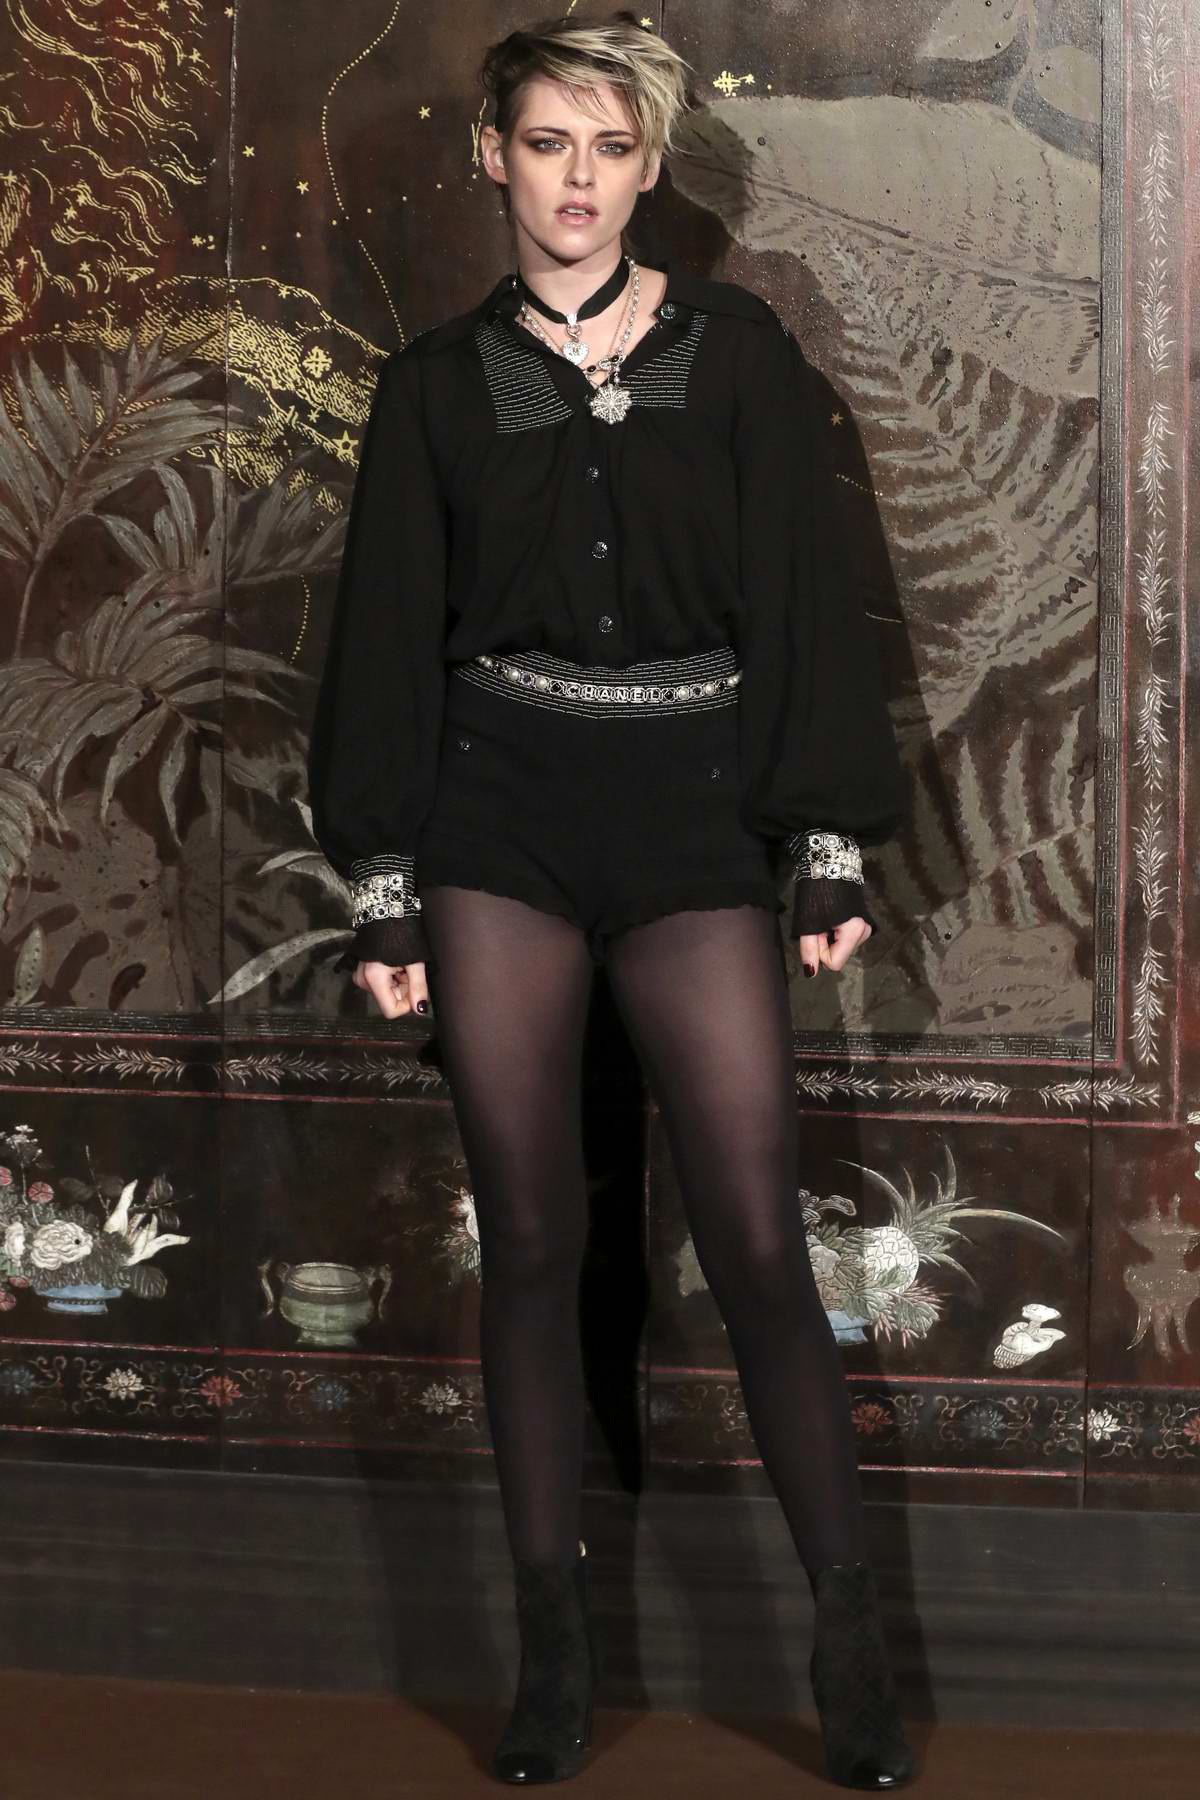 Kristen Stewart attends the Photocall of the Chanel Metiers d'art 2019-2020 Show at Le Grand Palais in Paris, France